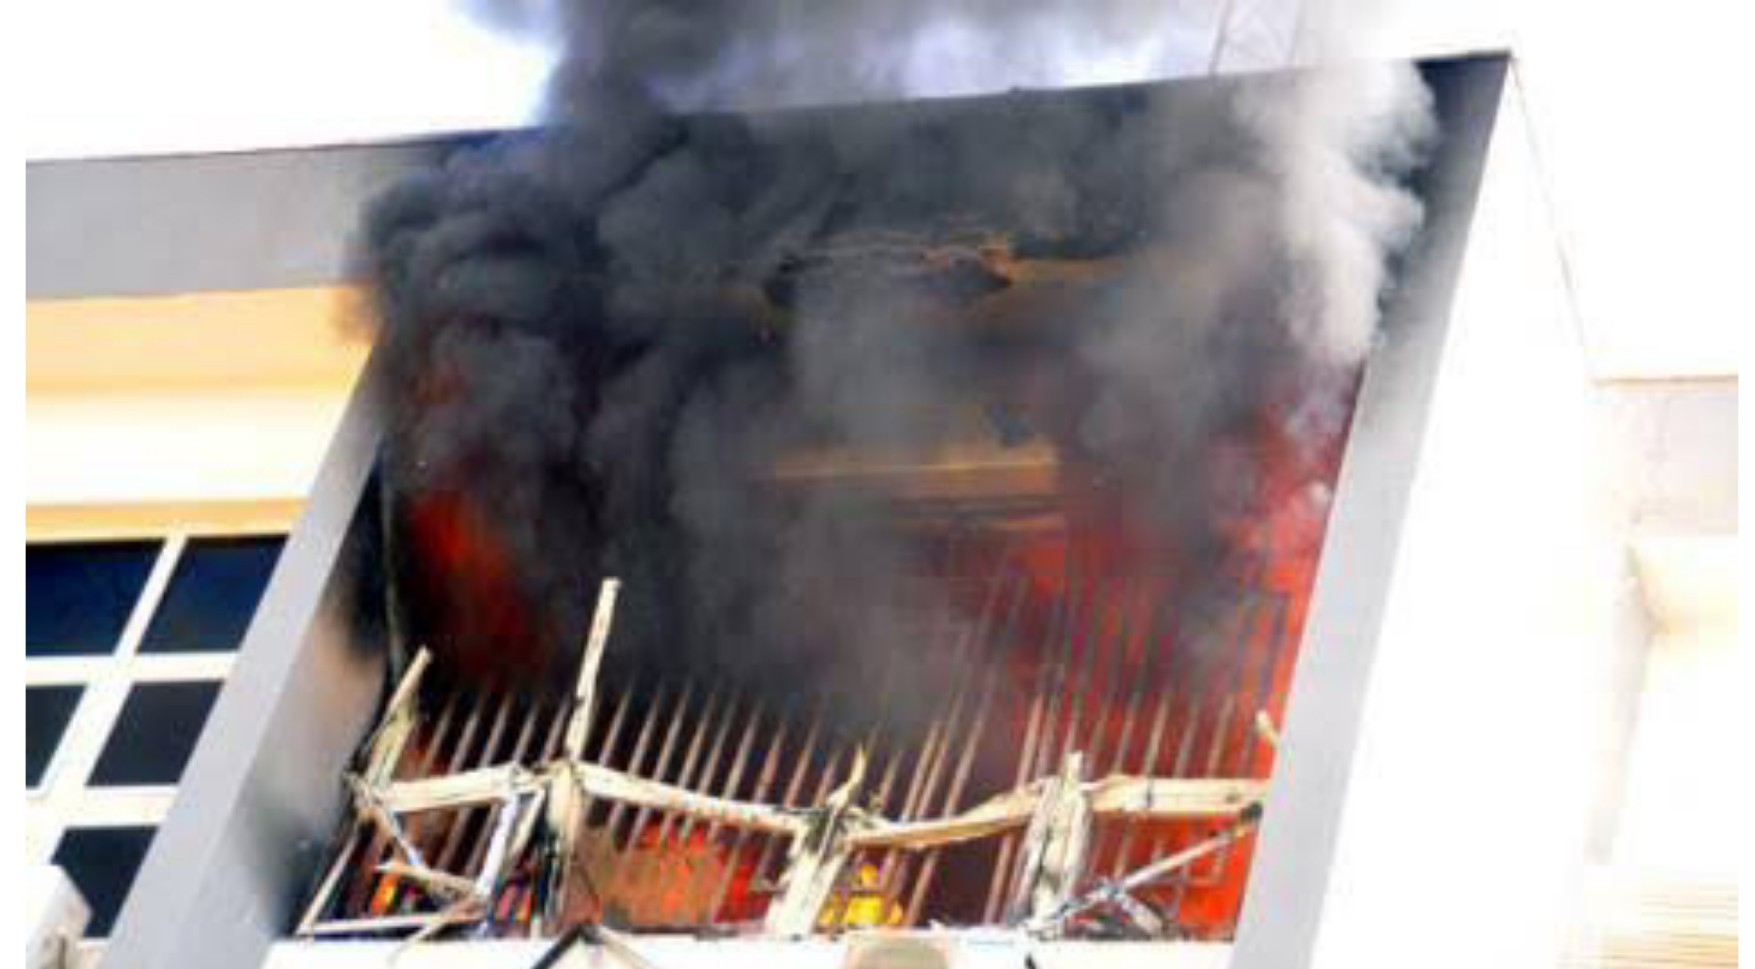 INEC launches probe of fire incident at headquarters